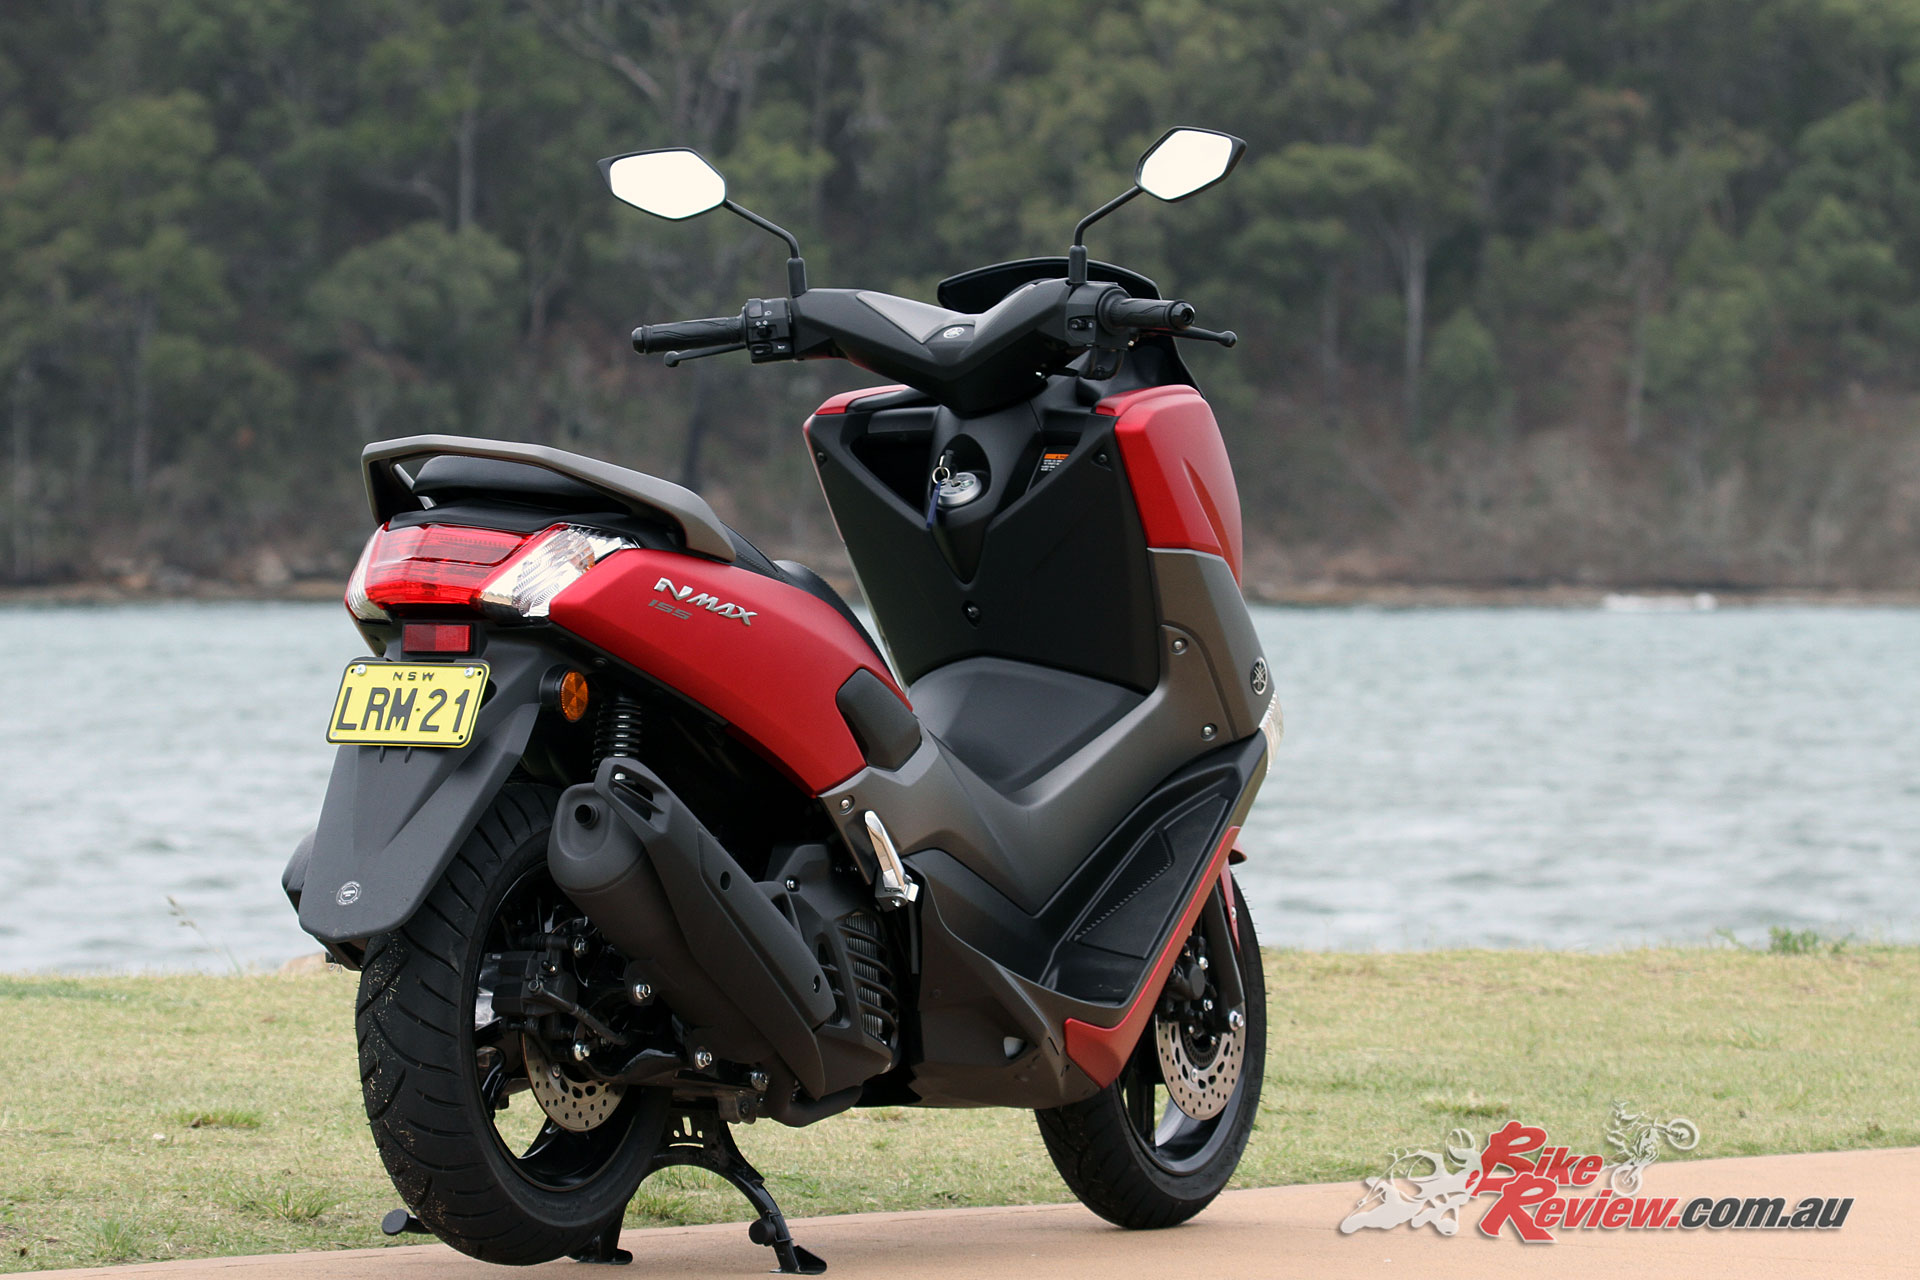 Review: 2018 Yamaha NMAX 155 Scooter